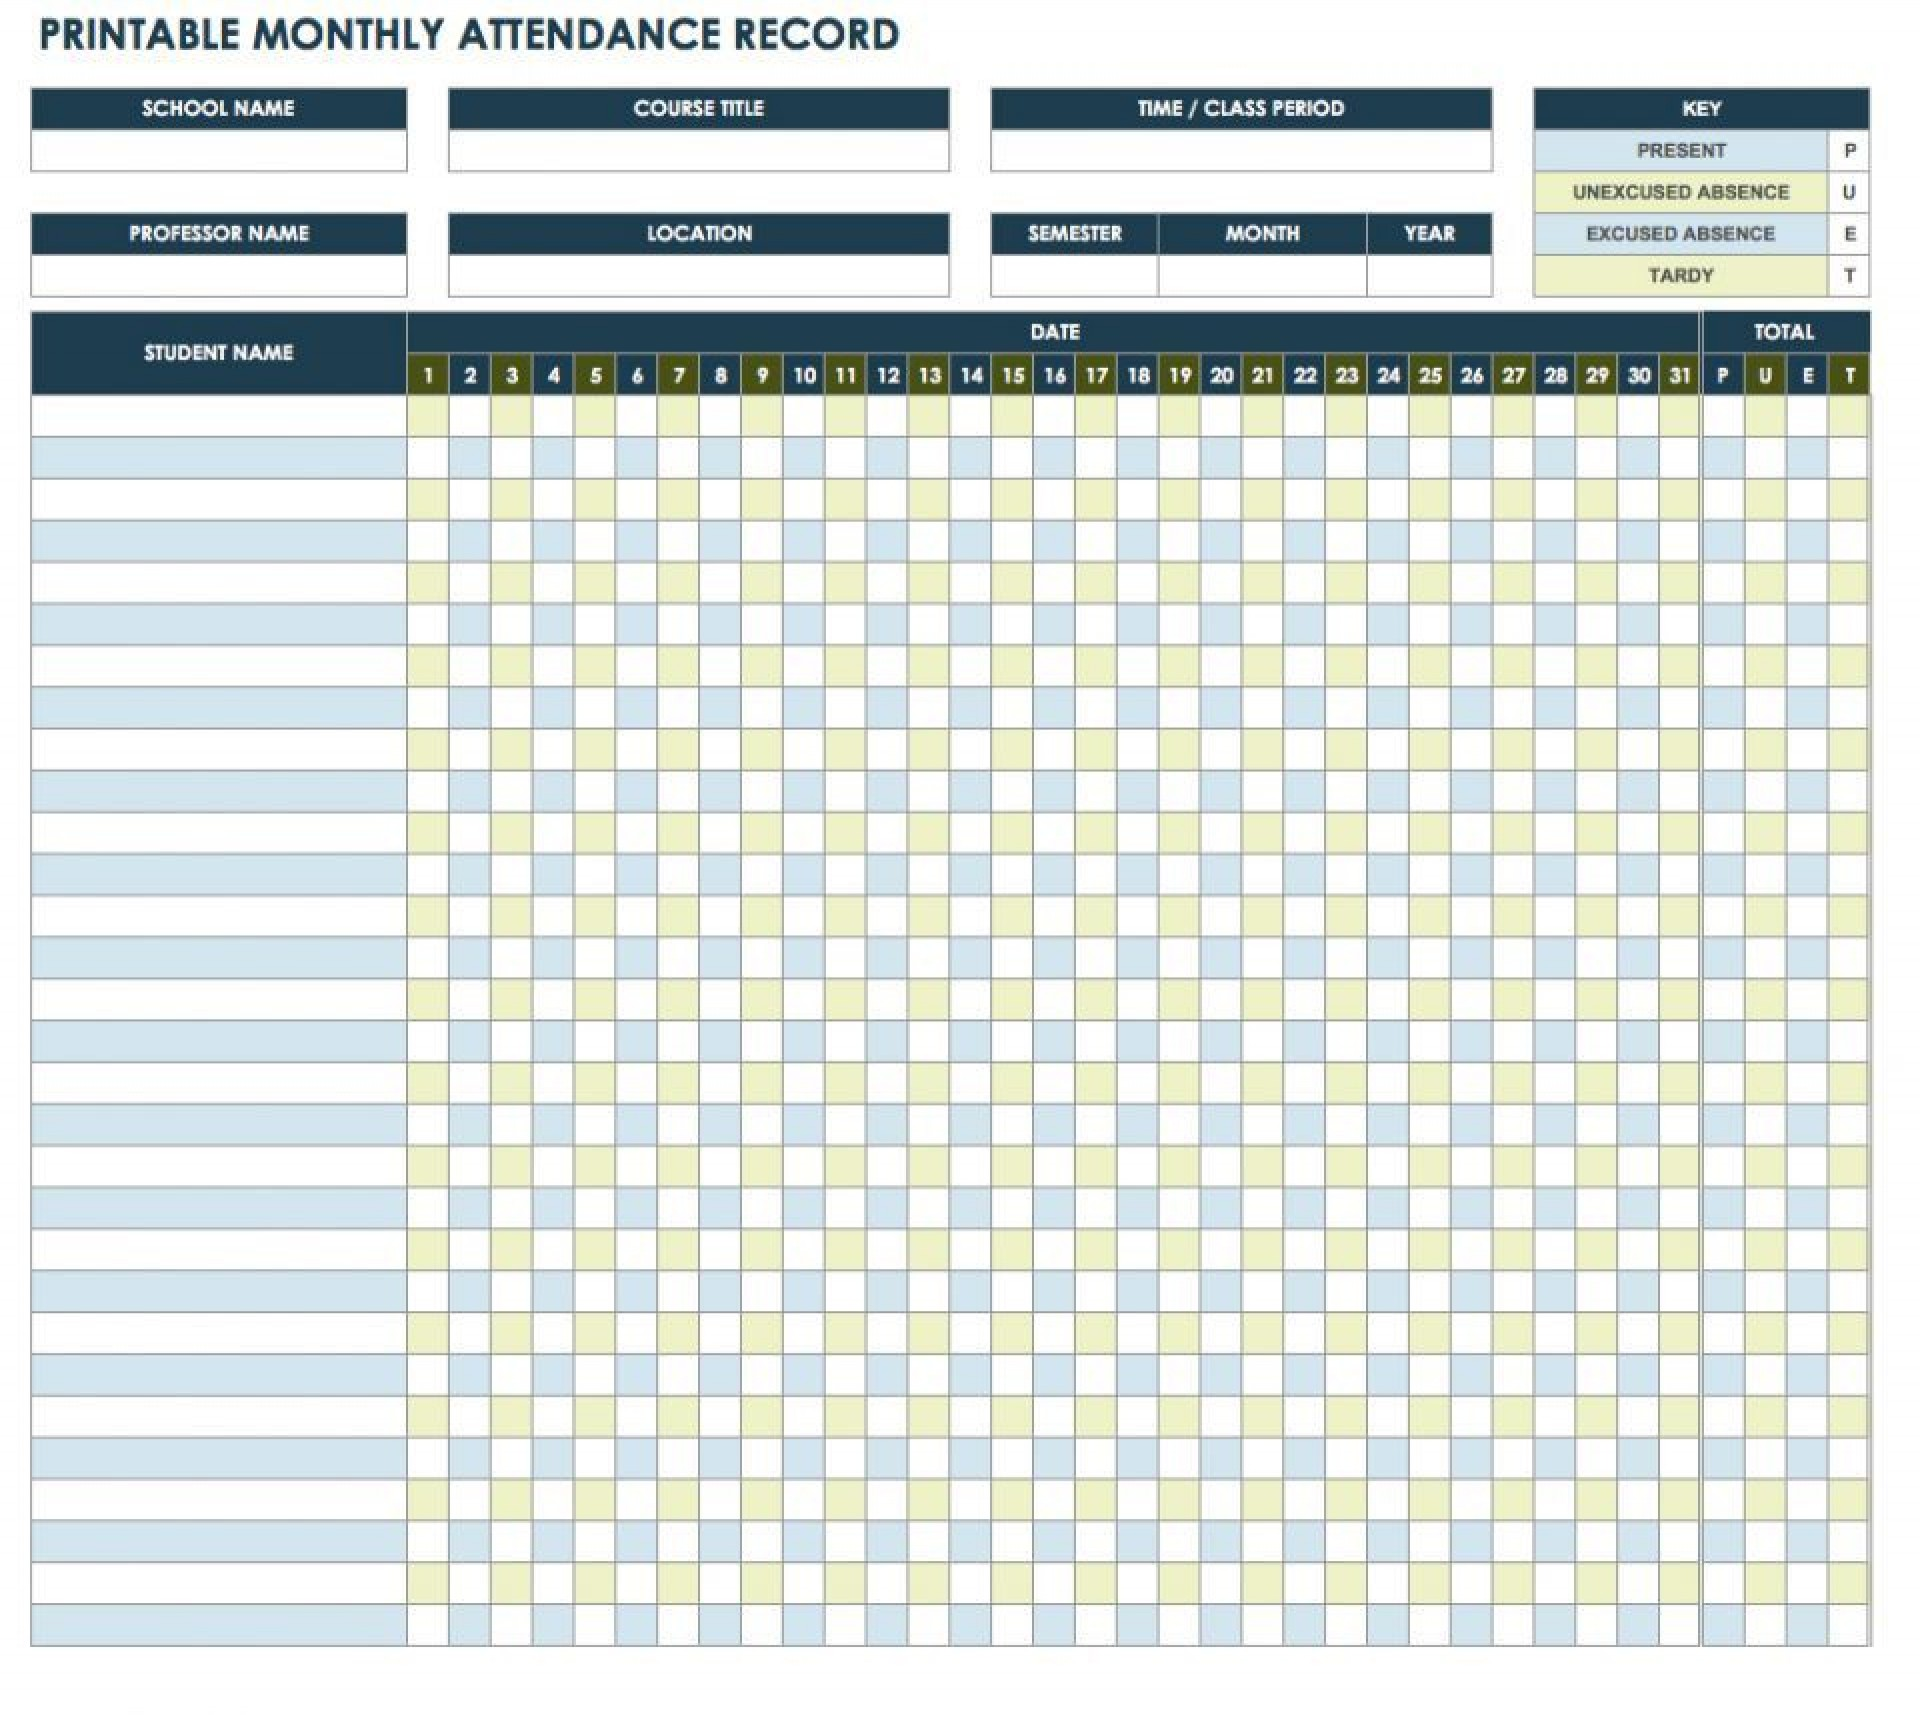 006 Fantastic Employee Attendance Record Template Excel Picture  Free Download With Time1920